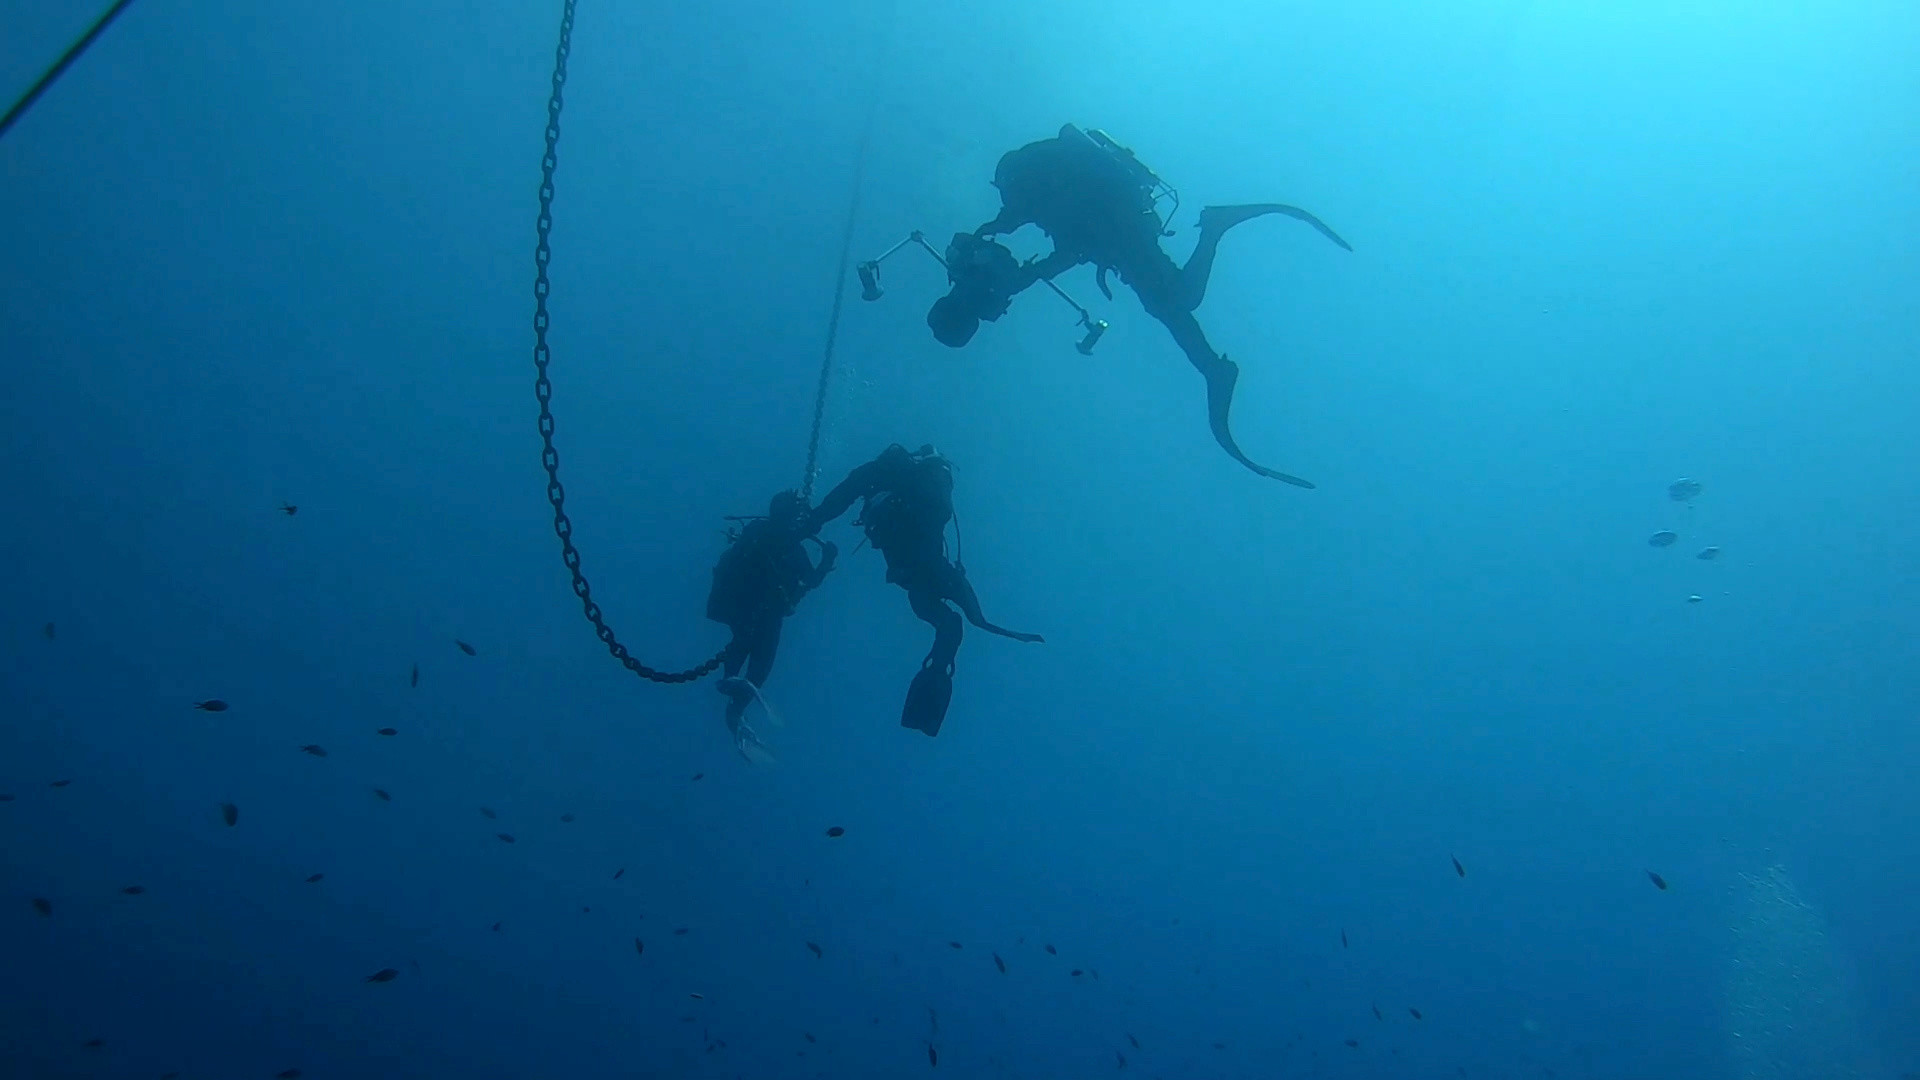 Italian Coast Guard divers use an underwater camera at sea off the coast of Lazio during a study on the health of Italy's seas and improvements to marine life due to a lack of human activities during the coronavirus disease (COVID-19) lockdown, in this still picture taken from video, April 29, 2020. Picture taken April 29, 2020. Italian Coast Guard/Handout via REUTERS THIS IMAGE HAS BEEN SUPPLIED BY A THIRD PARTY. MANDATORY CREDIT. - RC2MNH96KUWS